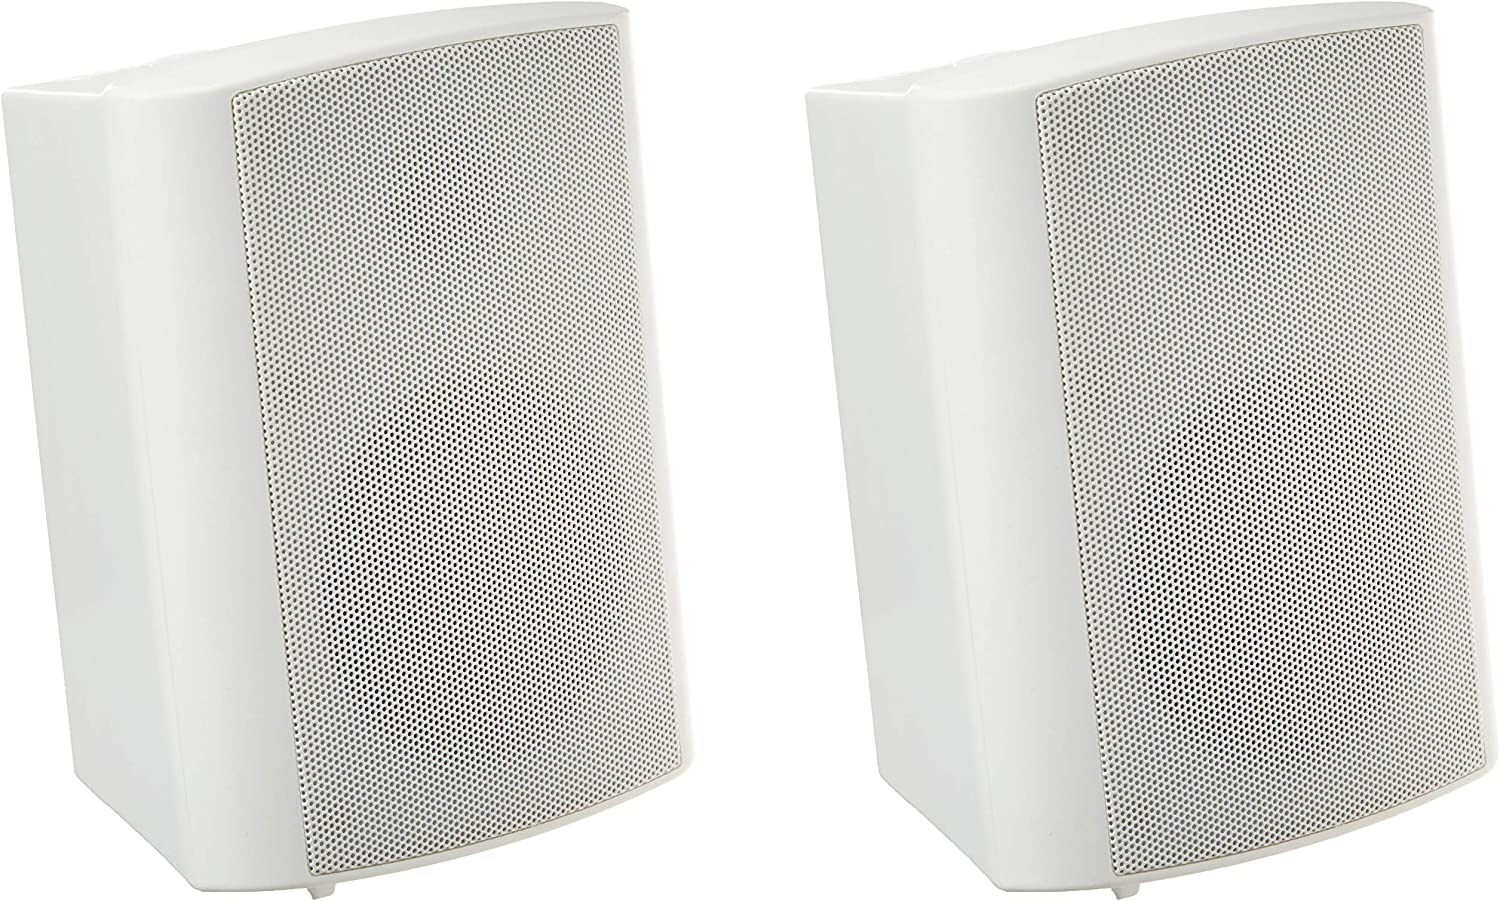 Theater Solutions TS425ODW Indoor or Outdoor Speakers Weatherproof Mountable White Pair